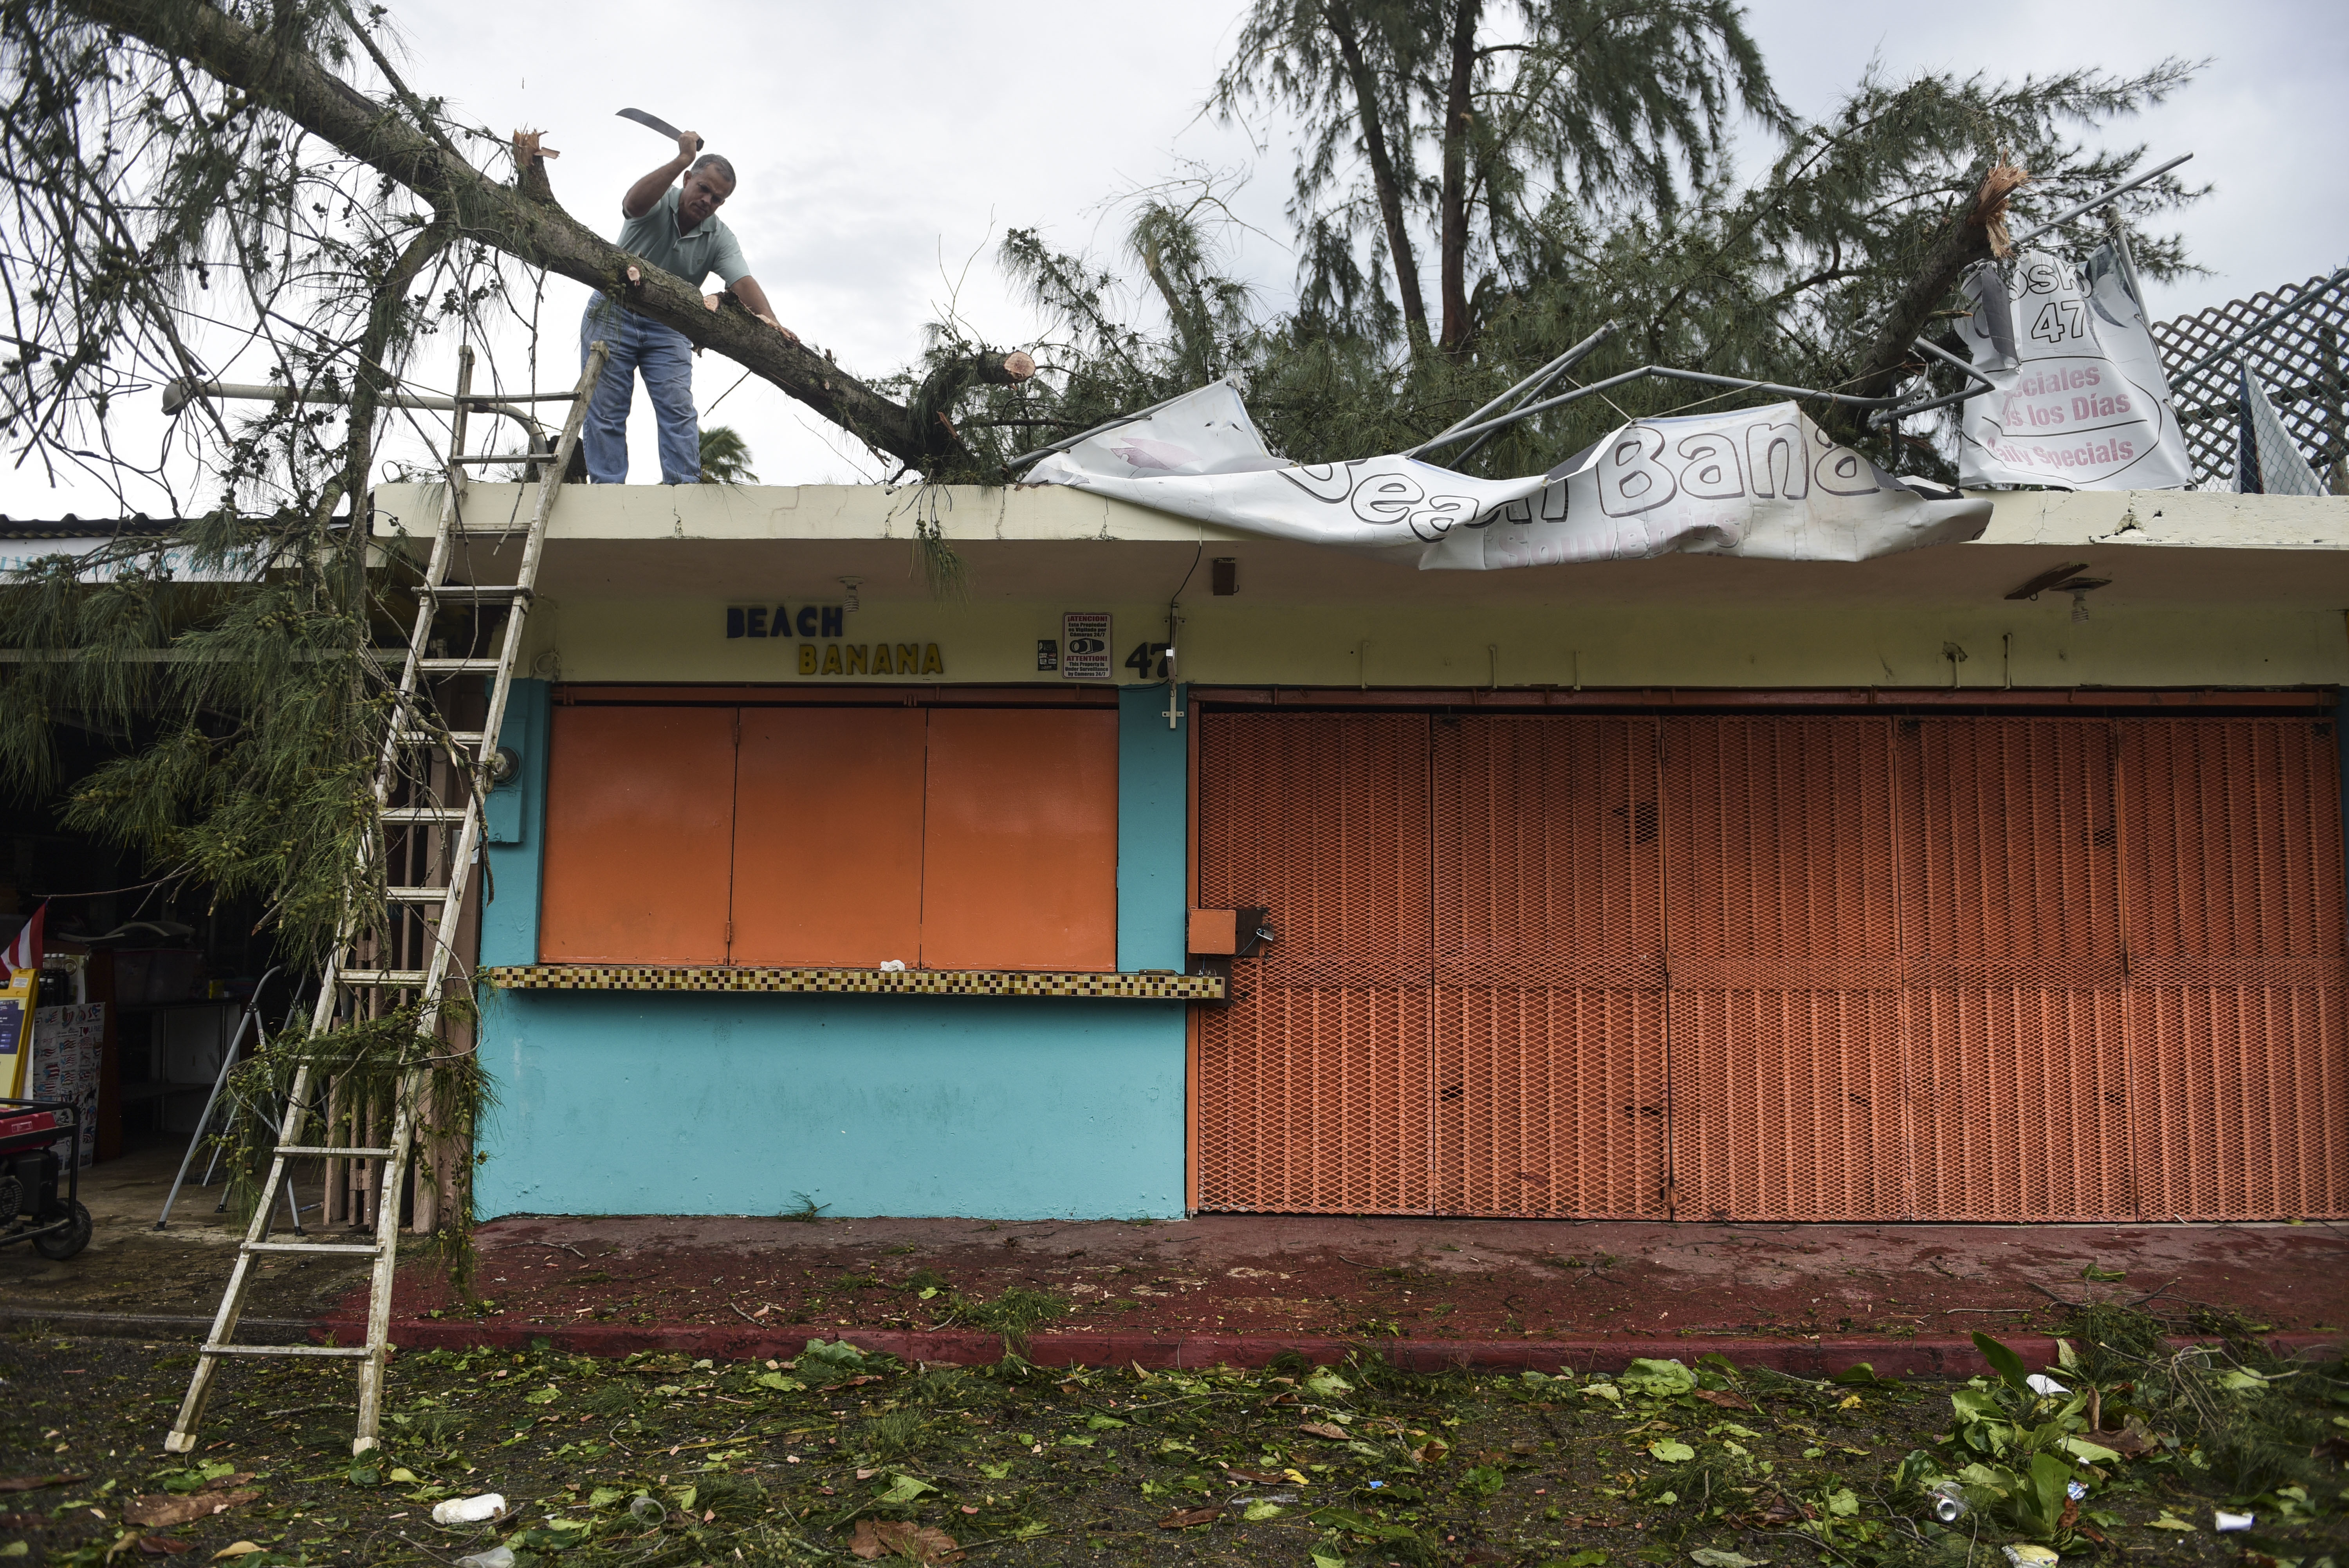 "<div class=""meta image-caption""><div class=""origin-logo origin-image none""><span>none</span></div><span class=""caption-text"">An employee works to remove a felled tree from a rooftop in the aftermath of Hurricane Irma, in Fajardo, Puerto Rico, Thursday, Sept. 7, 2017. (Carlos Giusti/AP Photo)</span></div>"